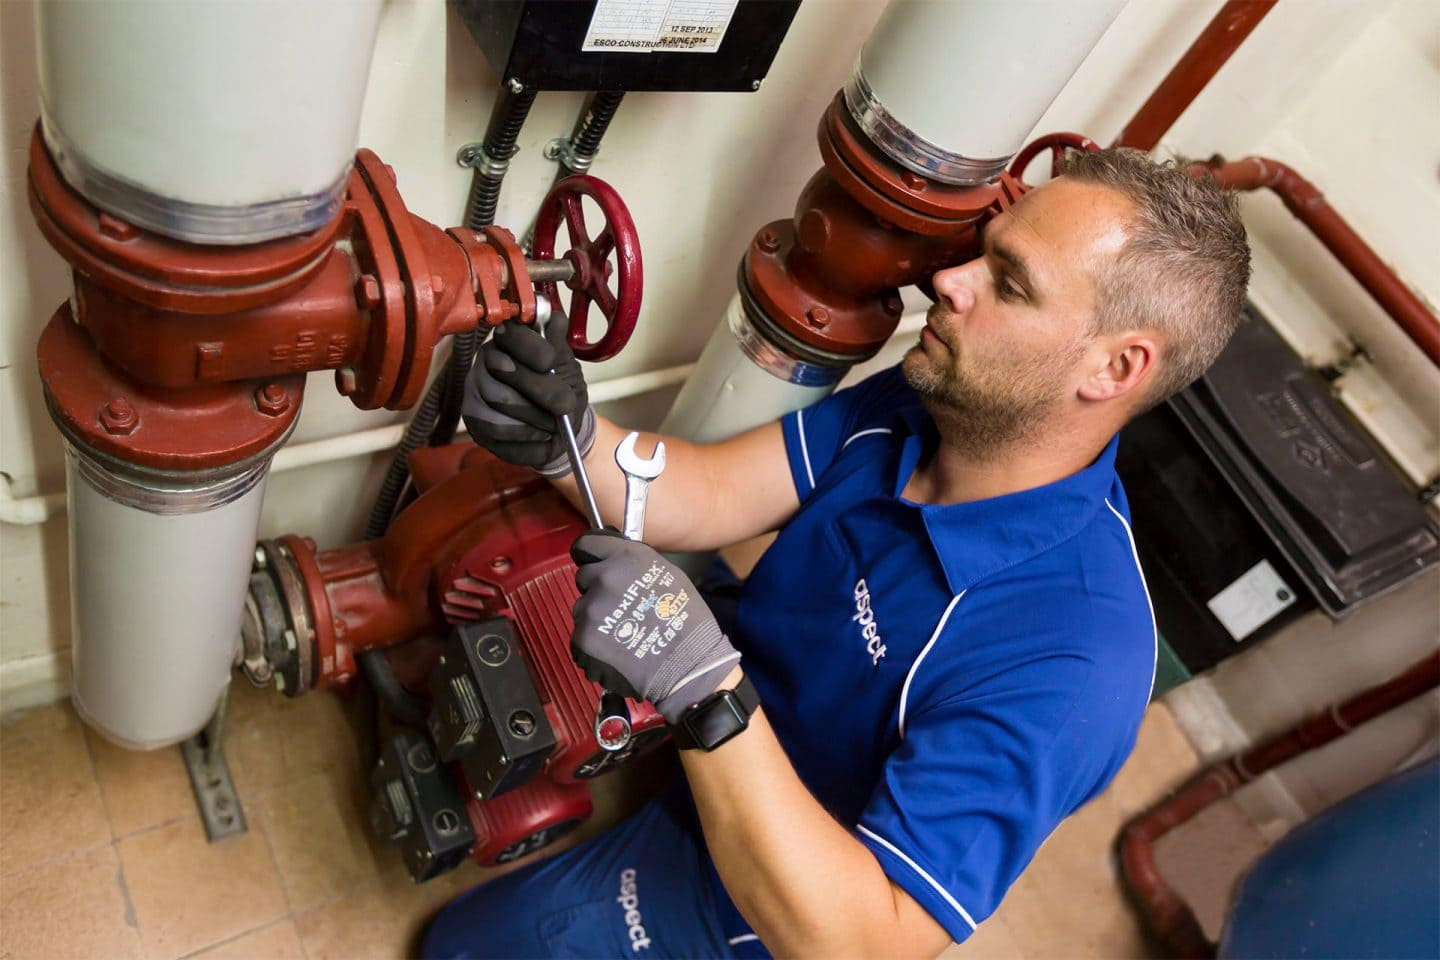 London plumbers commercial and residential